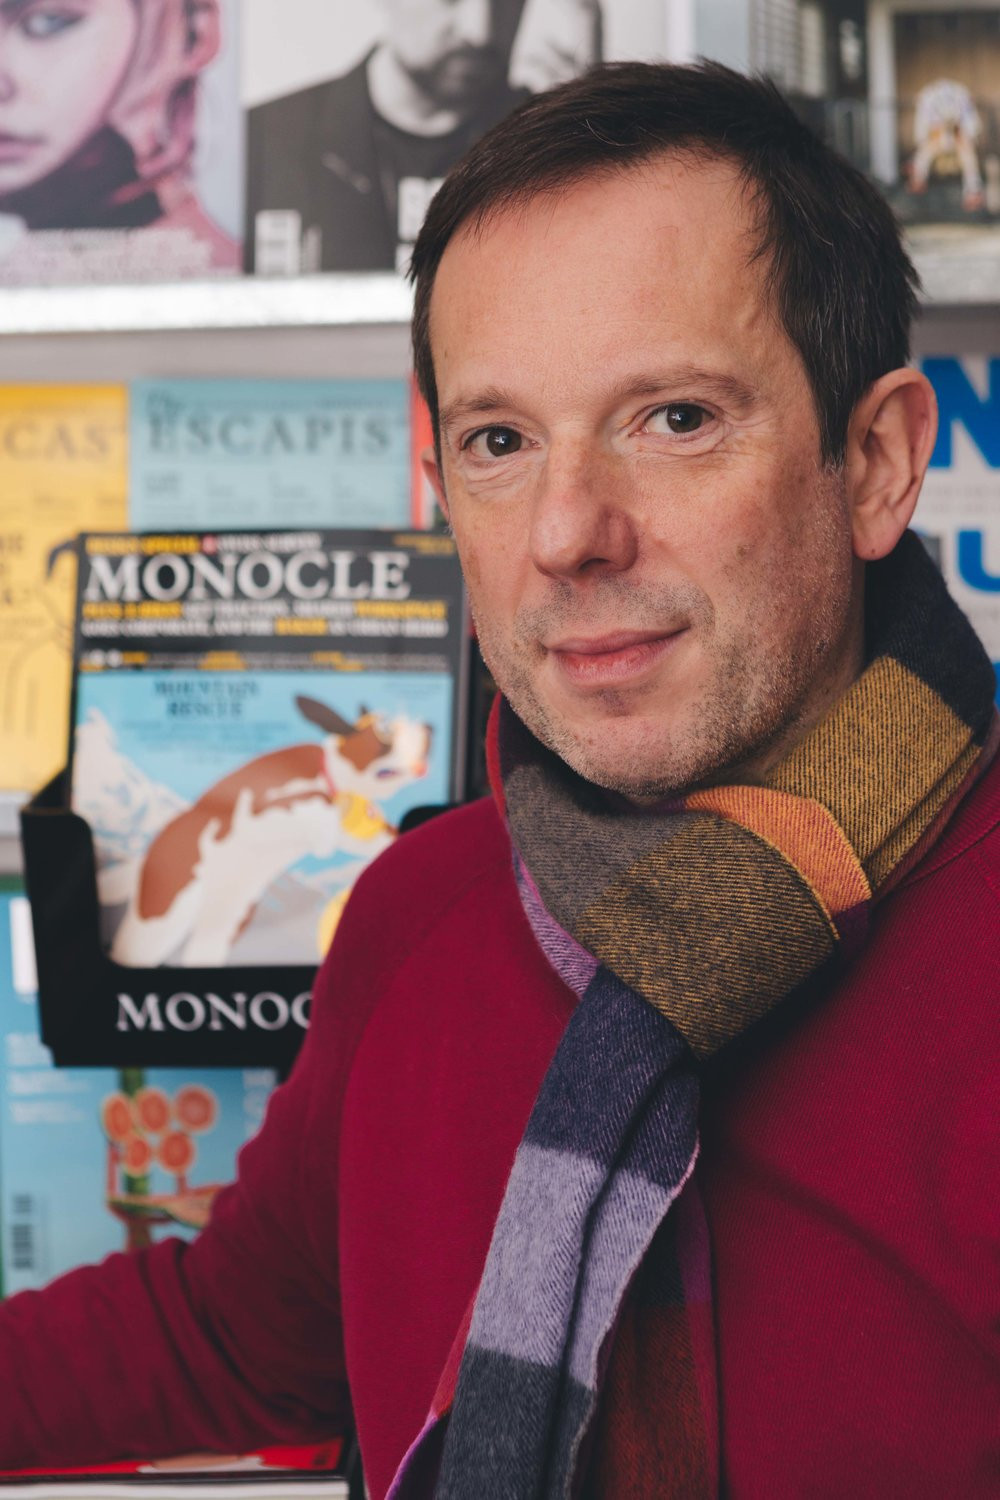 portrait of a man in a red jumper with a striped scarf looking to camera with books presented behind him